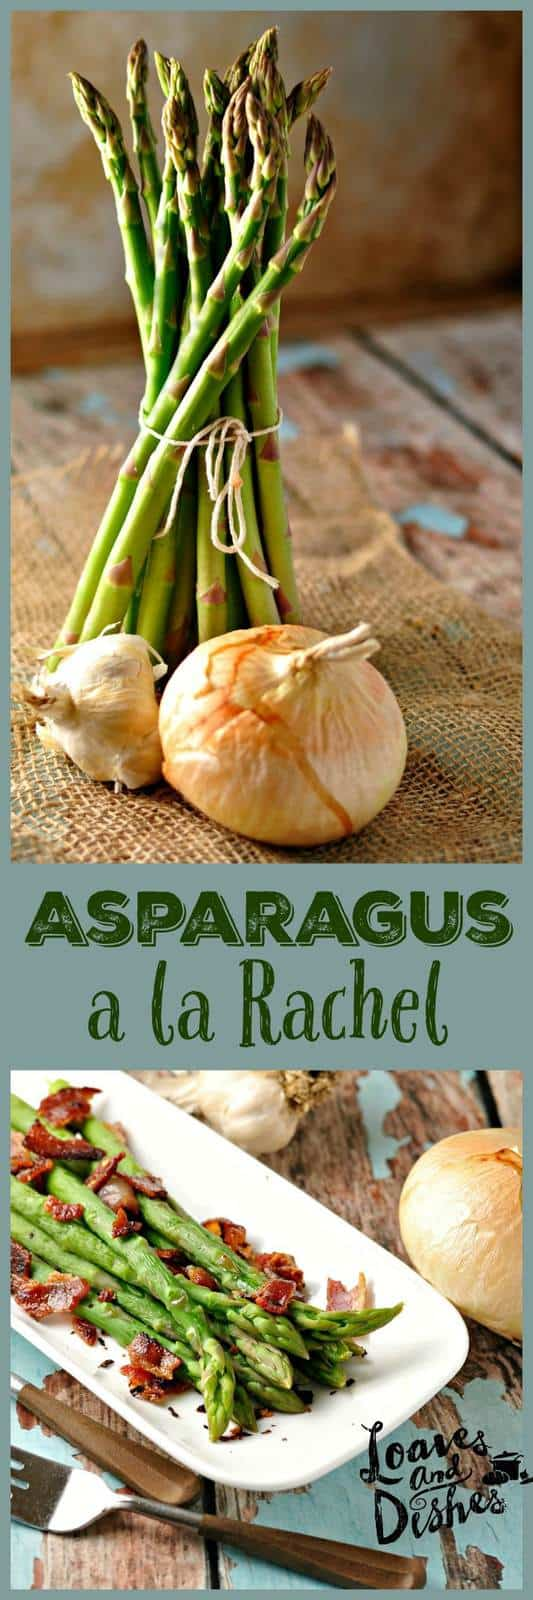 Need a delicious and nutritious EASY and FAST dinner or holiday side dish? Try this one! www.loavesanddishes.net